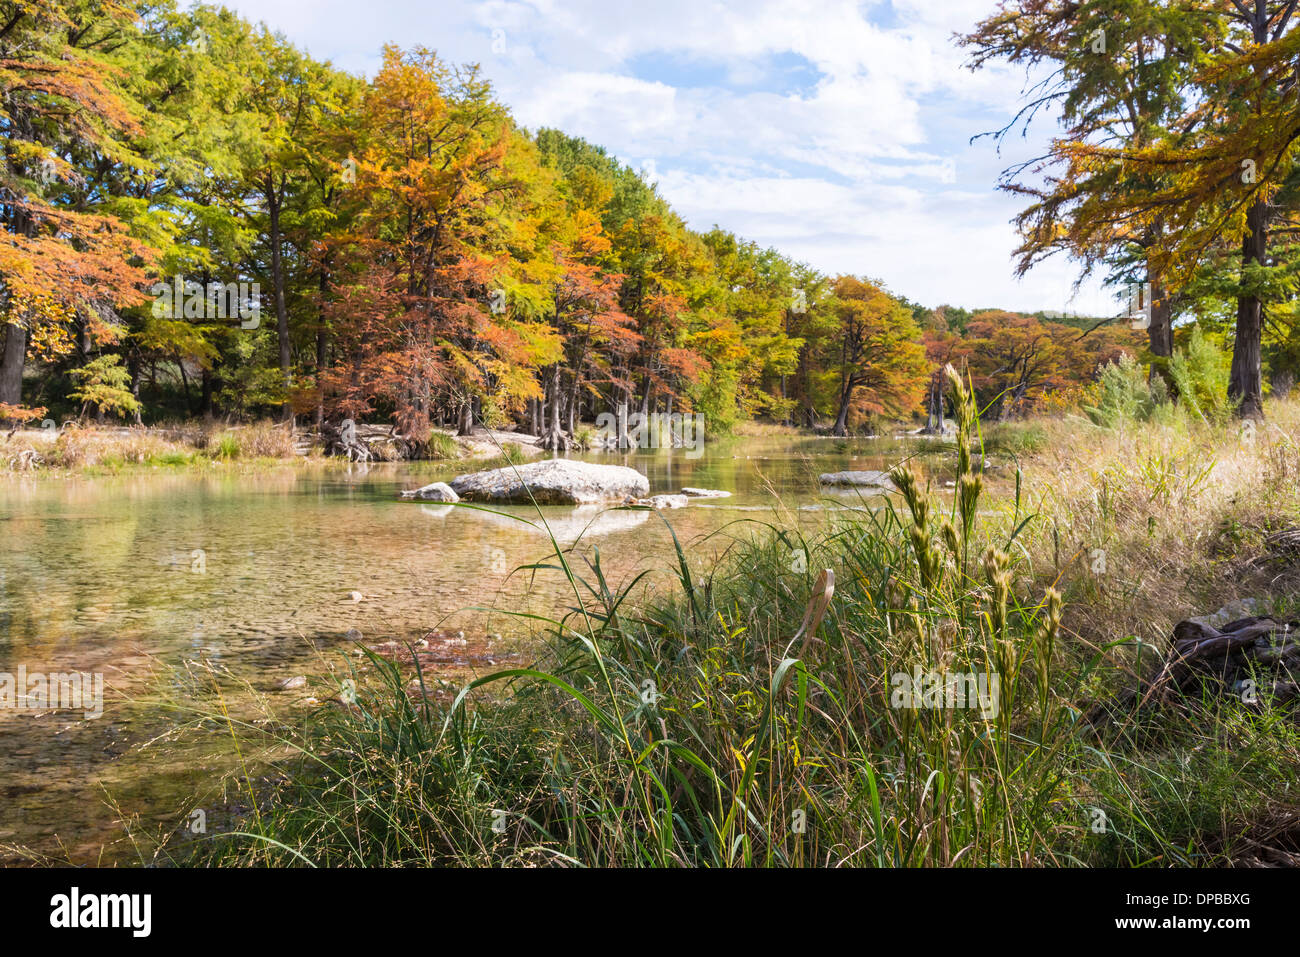 Water Country Usa Park Stock Photos & Water Country Usa Park Stock ...